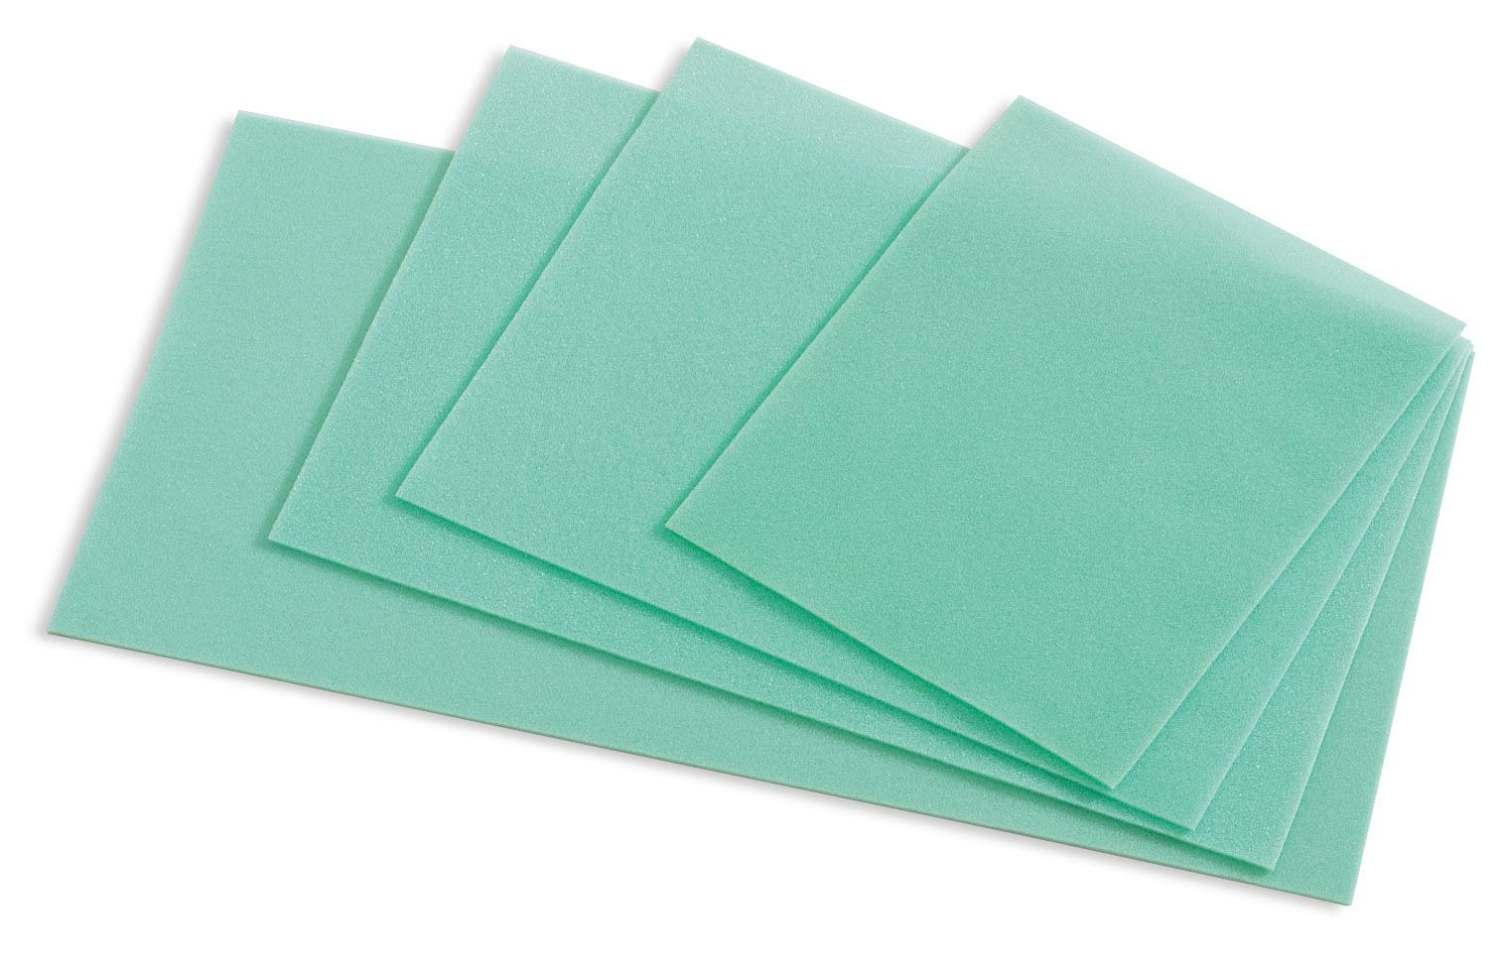 Kendall Instrument Tray Pad - Extra-Fine, Pre-Cut, Reticucel, Box of 75 - Model 31140992